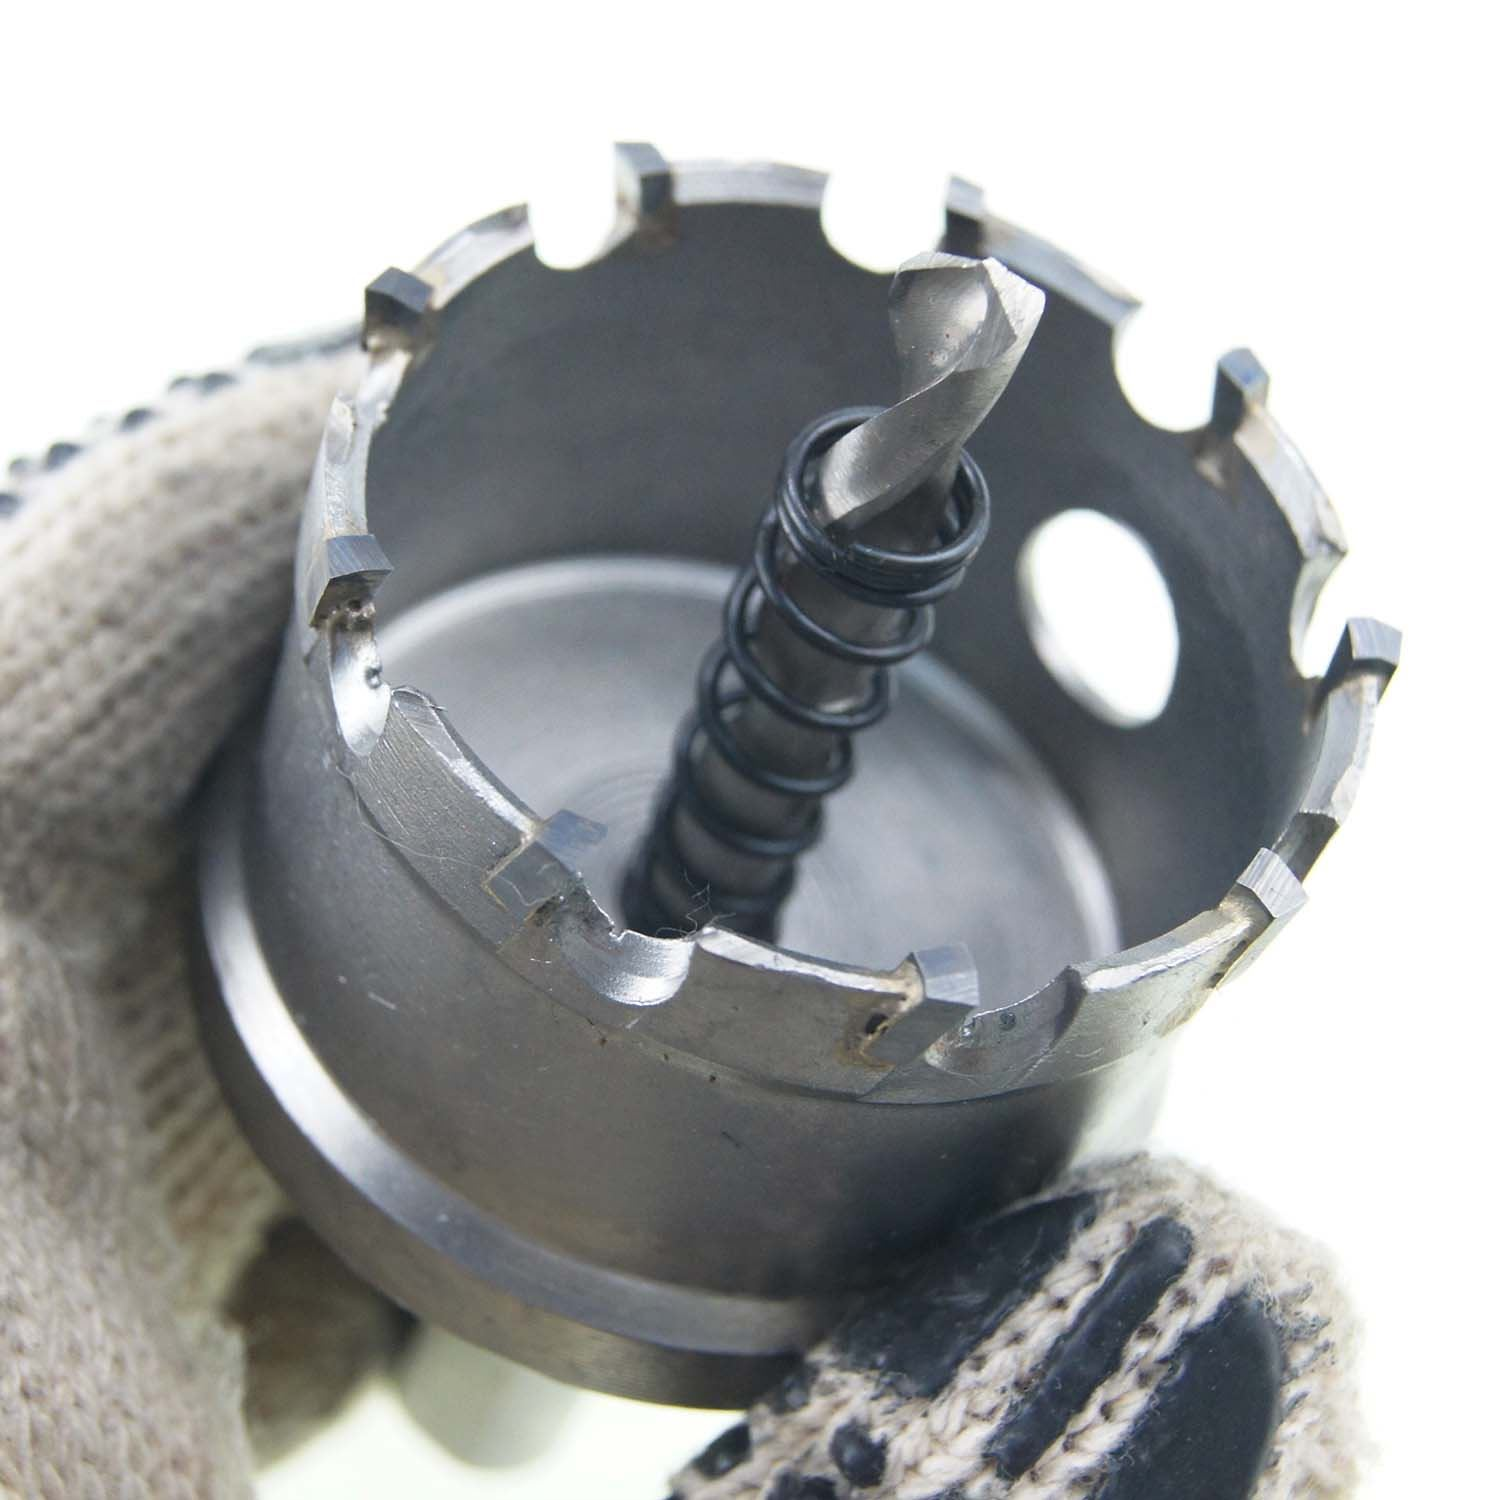 Hole Circle Round TCT Saw Stainless Steel Metal Wood Core Drill Bit 25 to 125mm